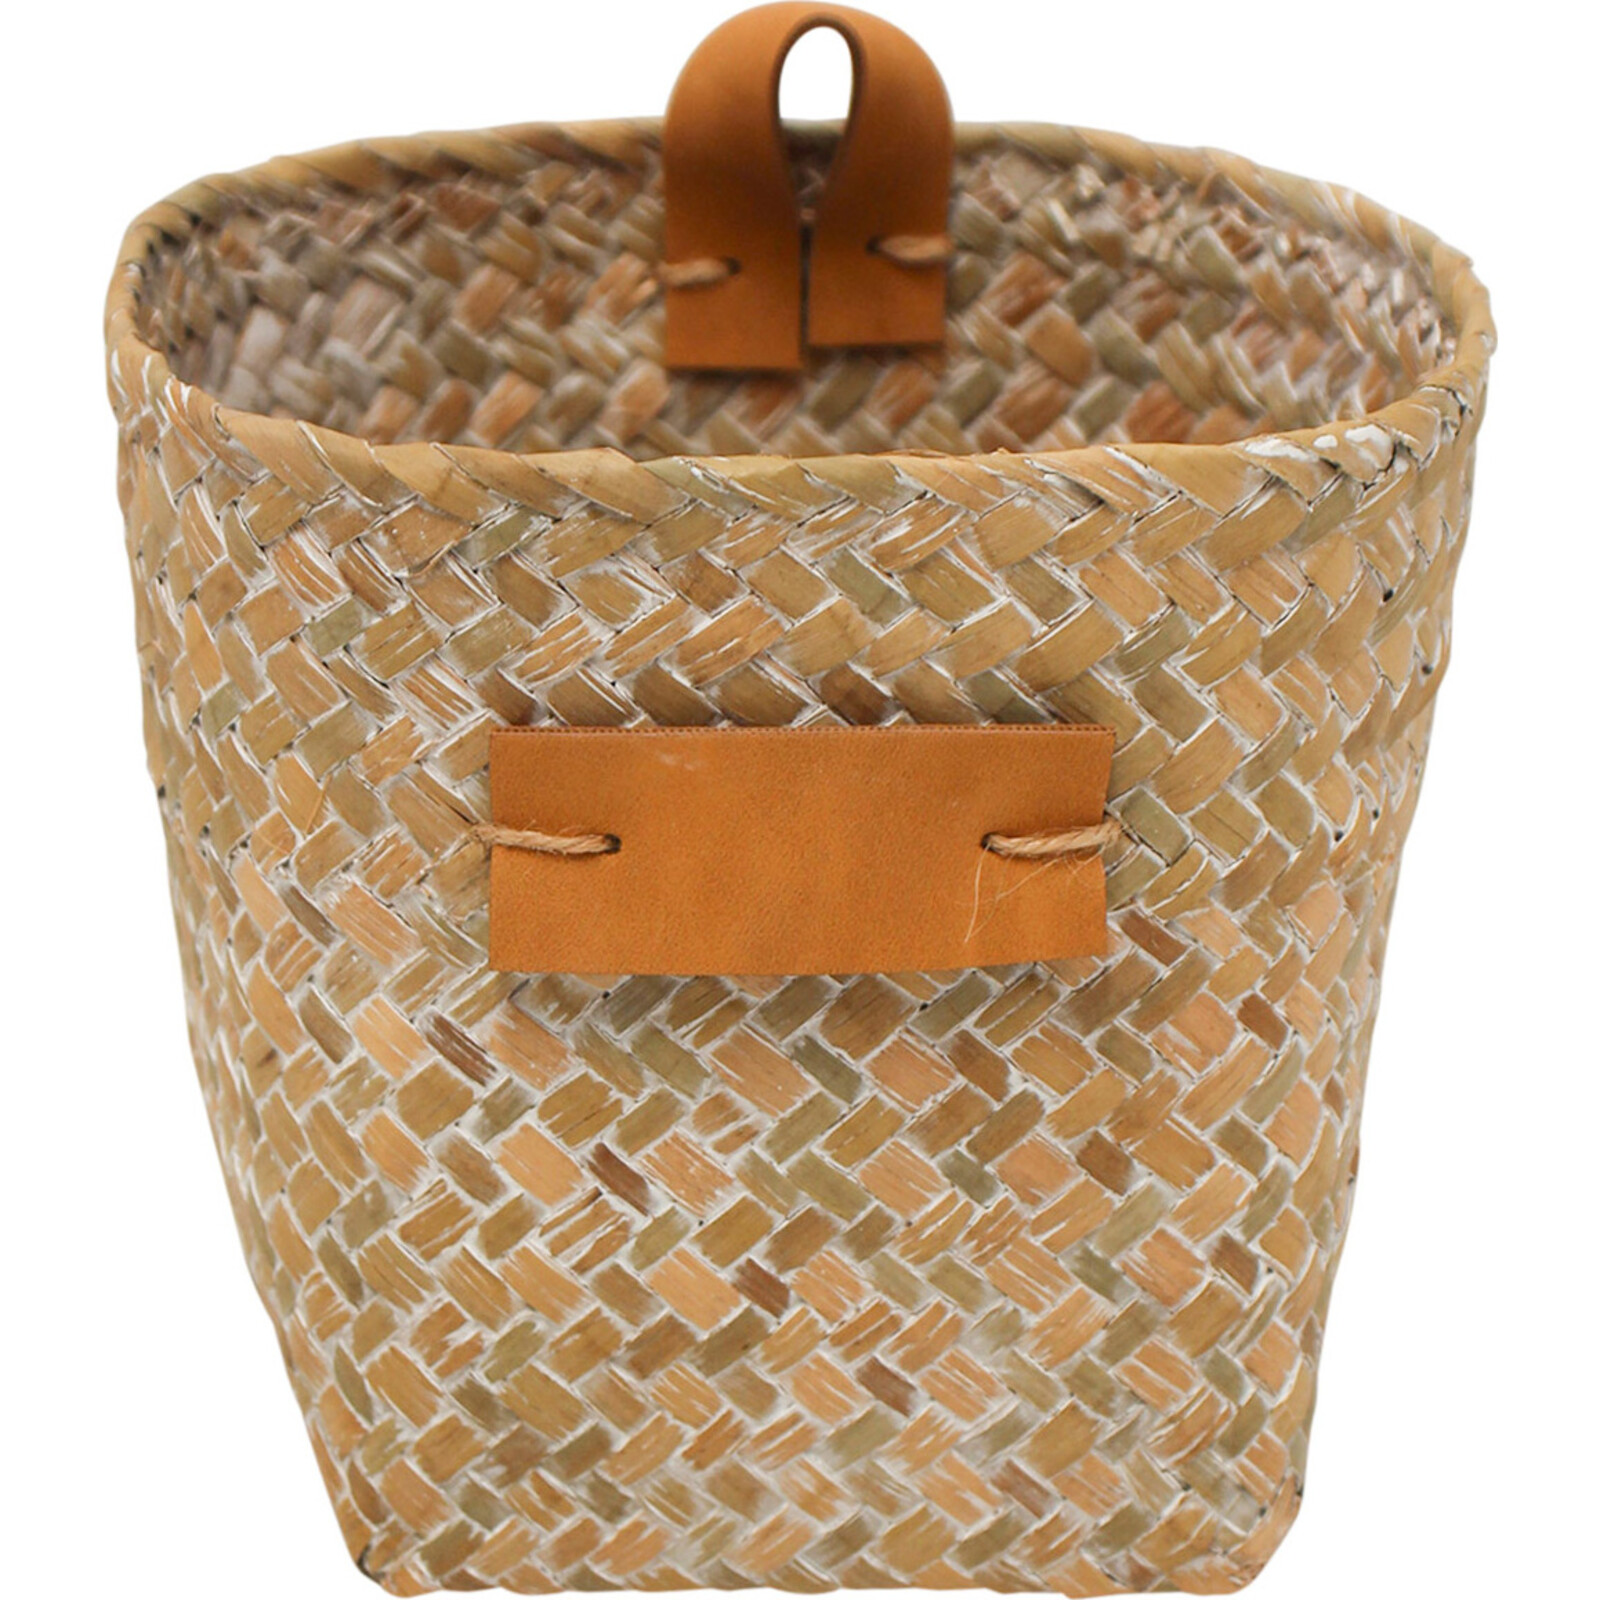 Woven Tidy/Planter Wash